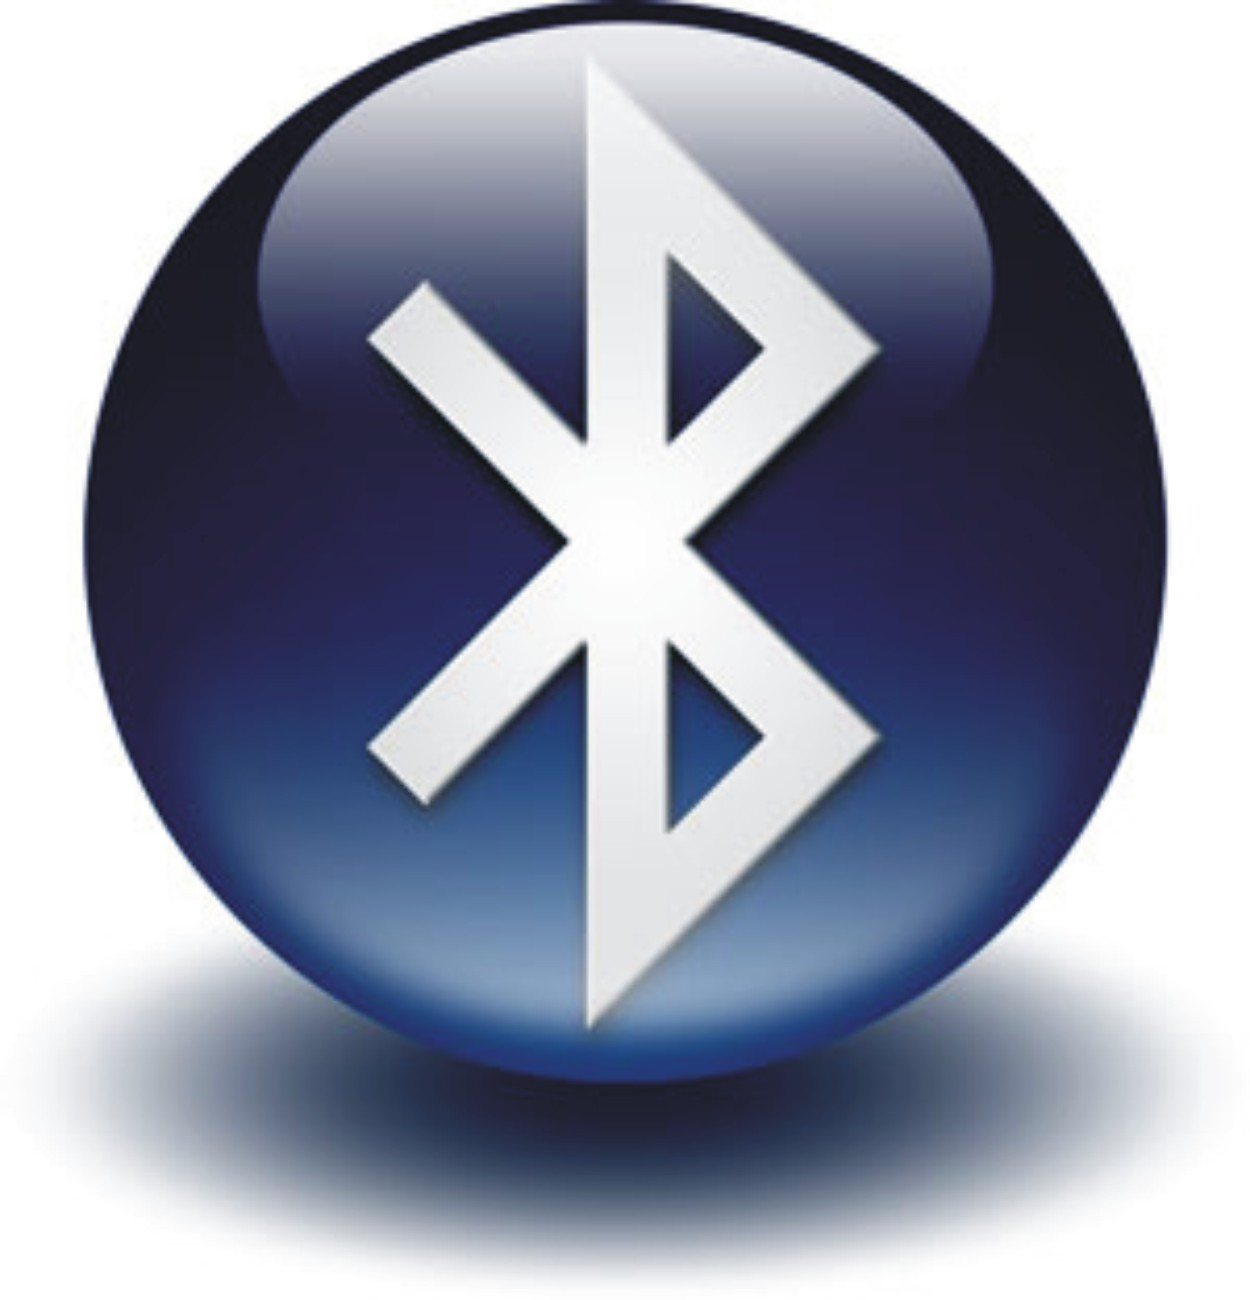 How To Pair A Bluetooth Device With An Iphone